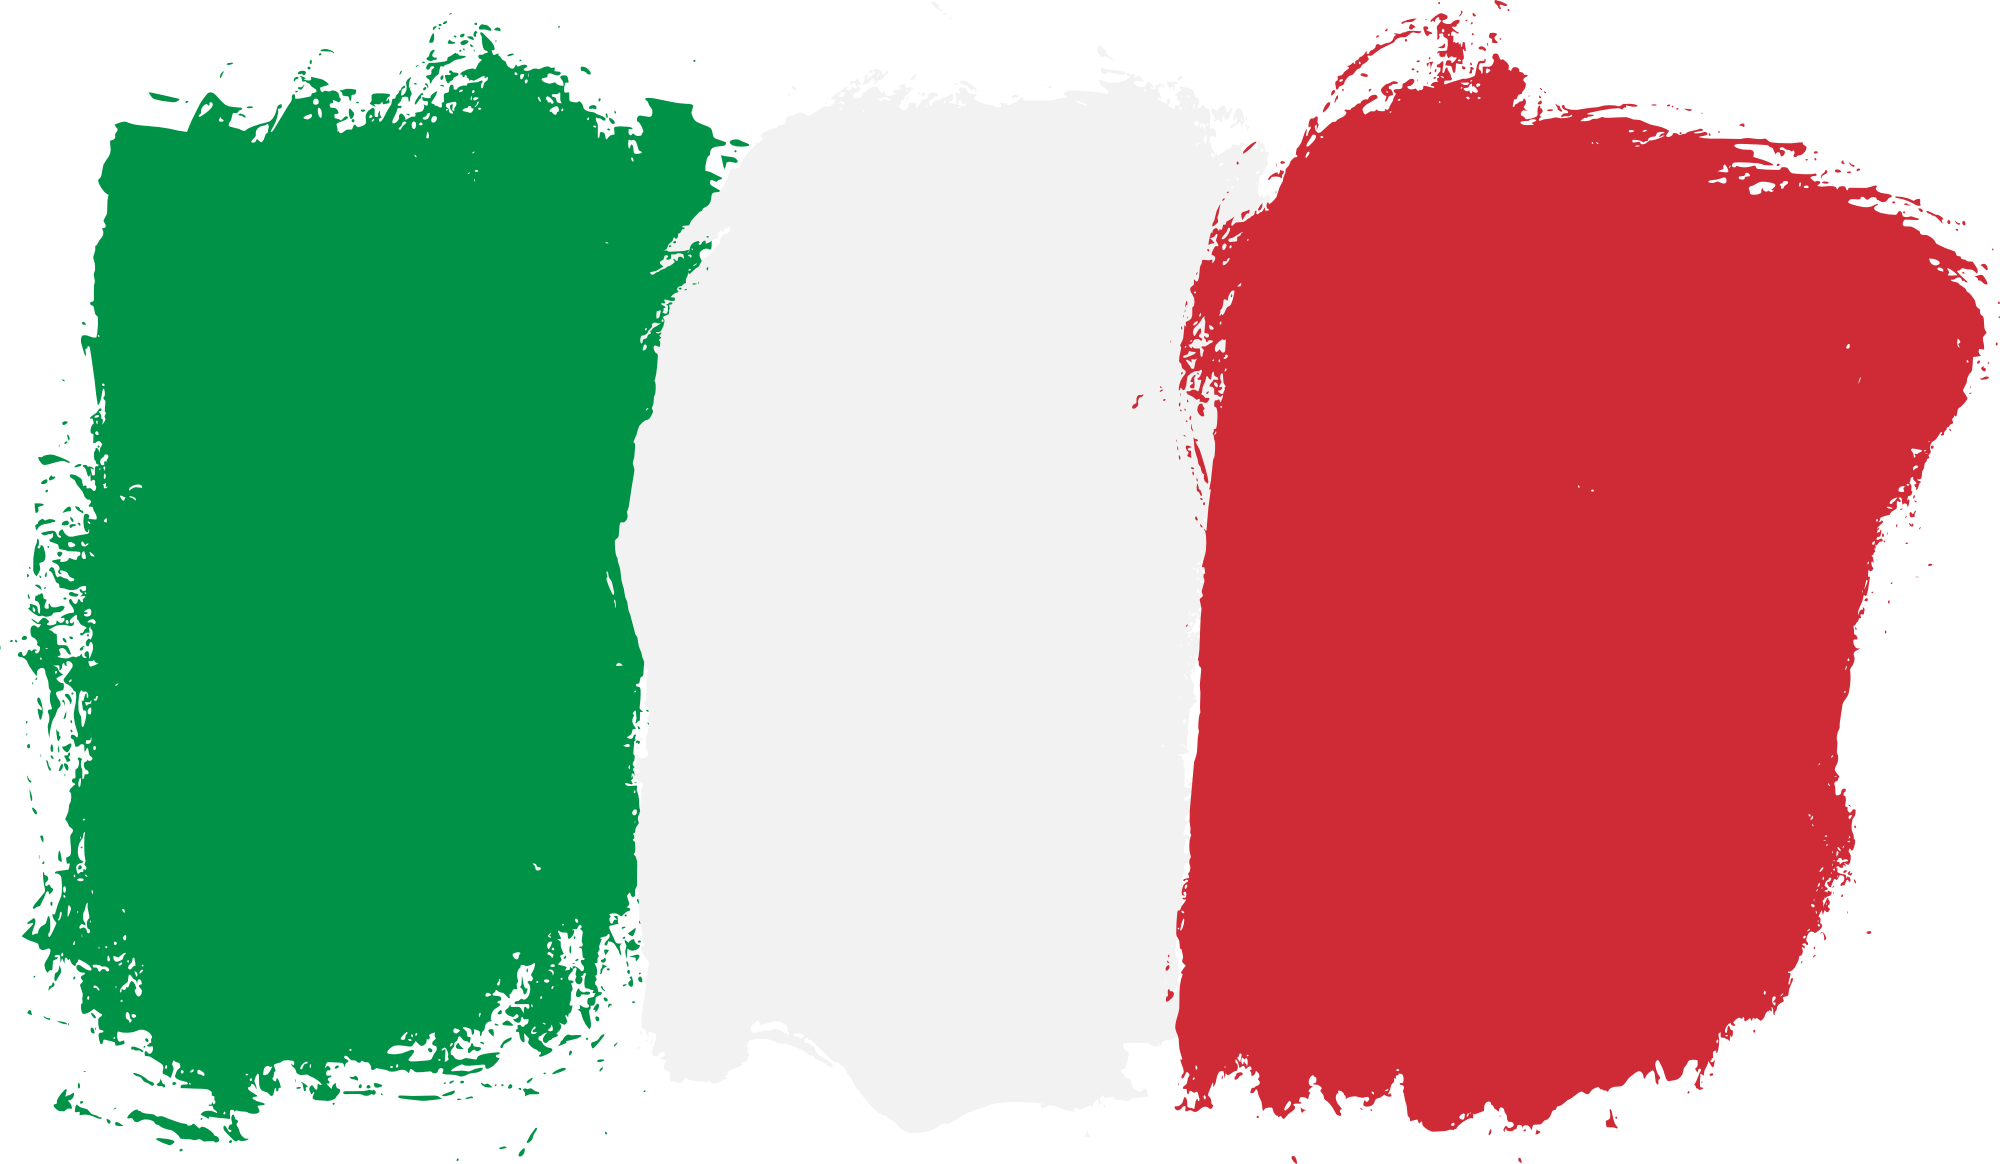 Free png transparent images. Italian clipart border